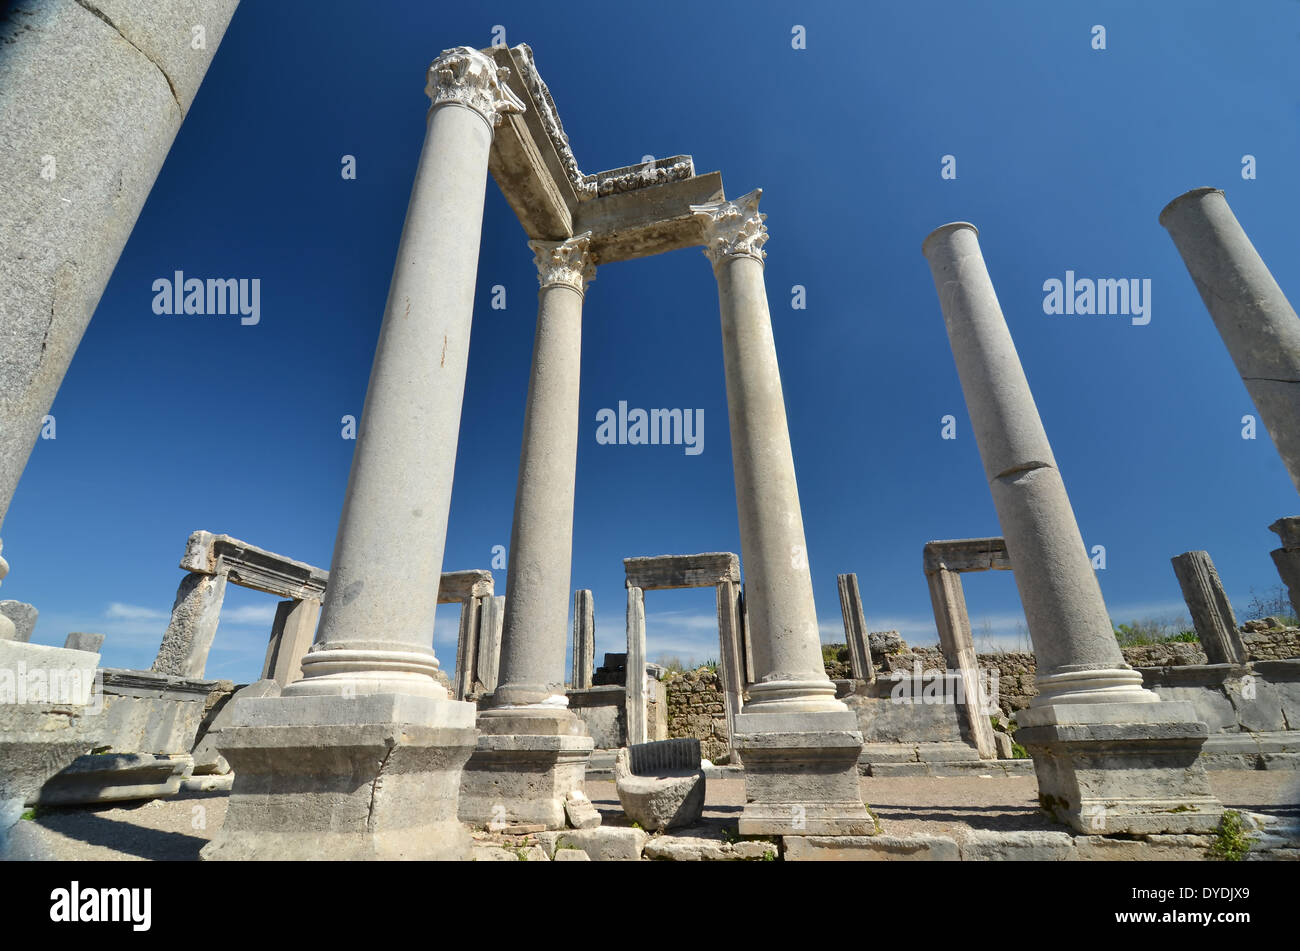 greece europe greek architecture ancient greece europe column stone